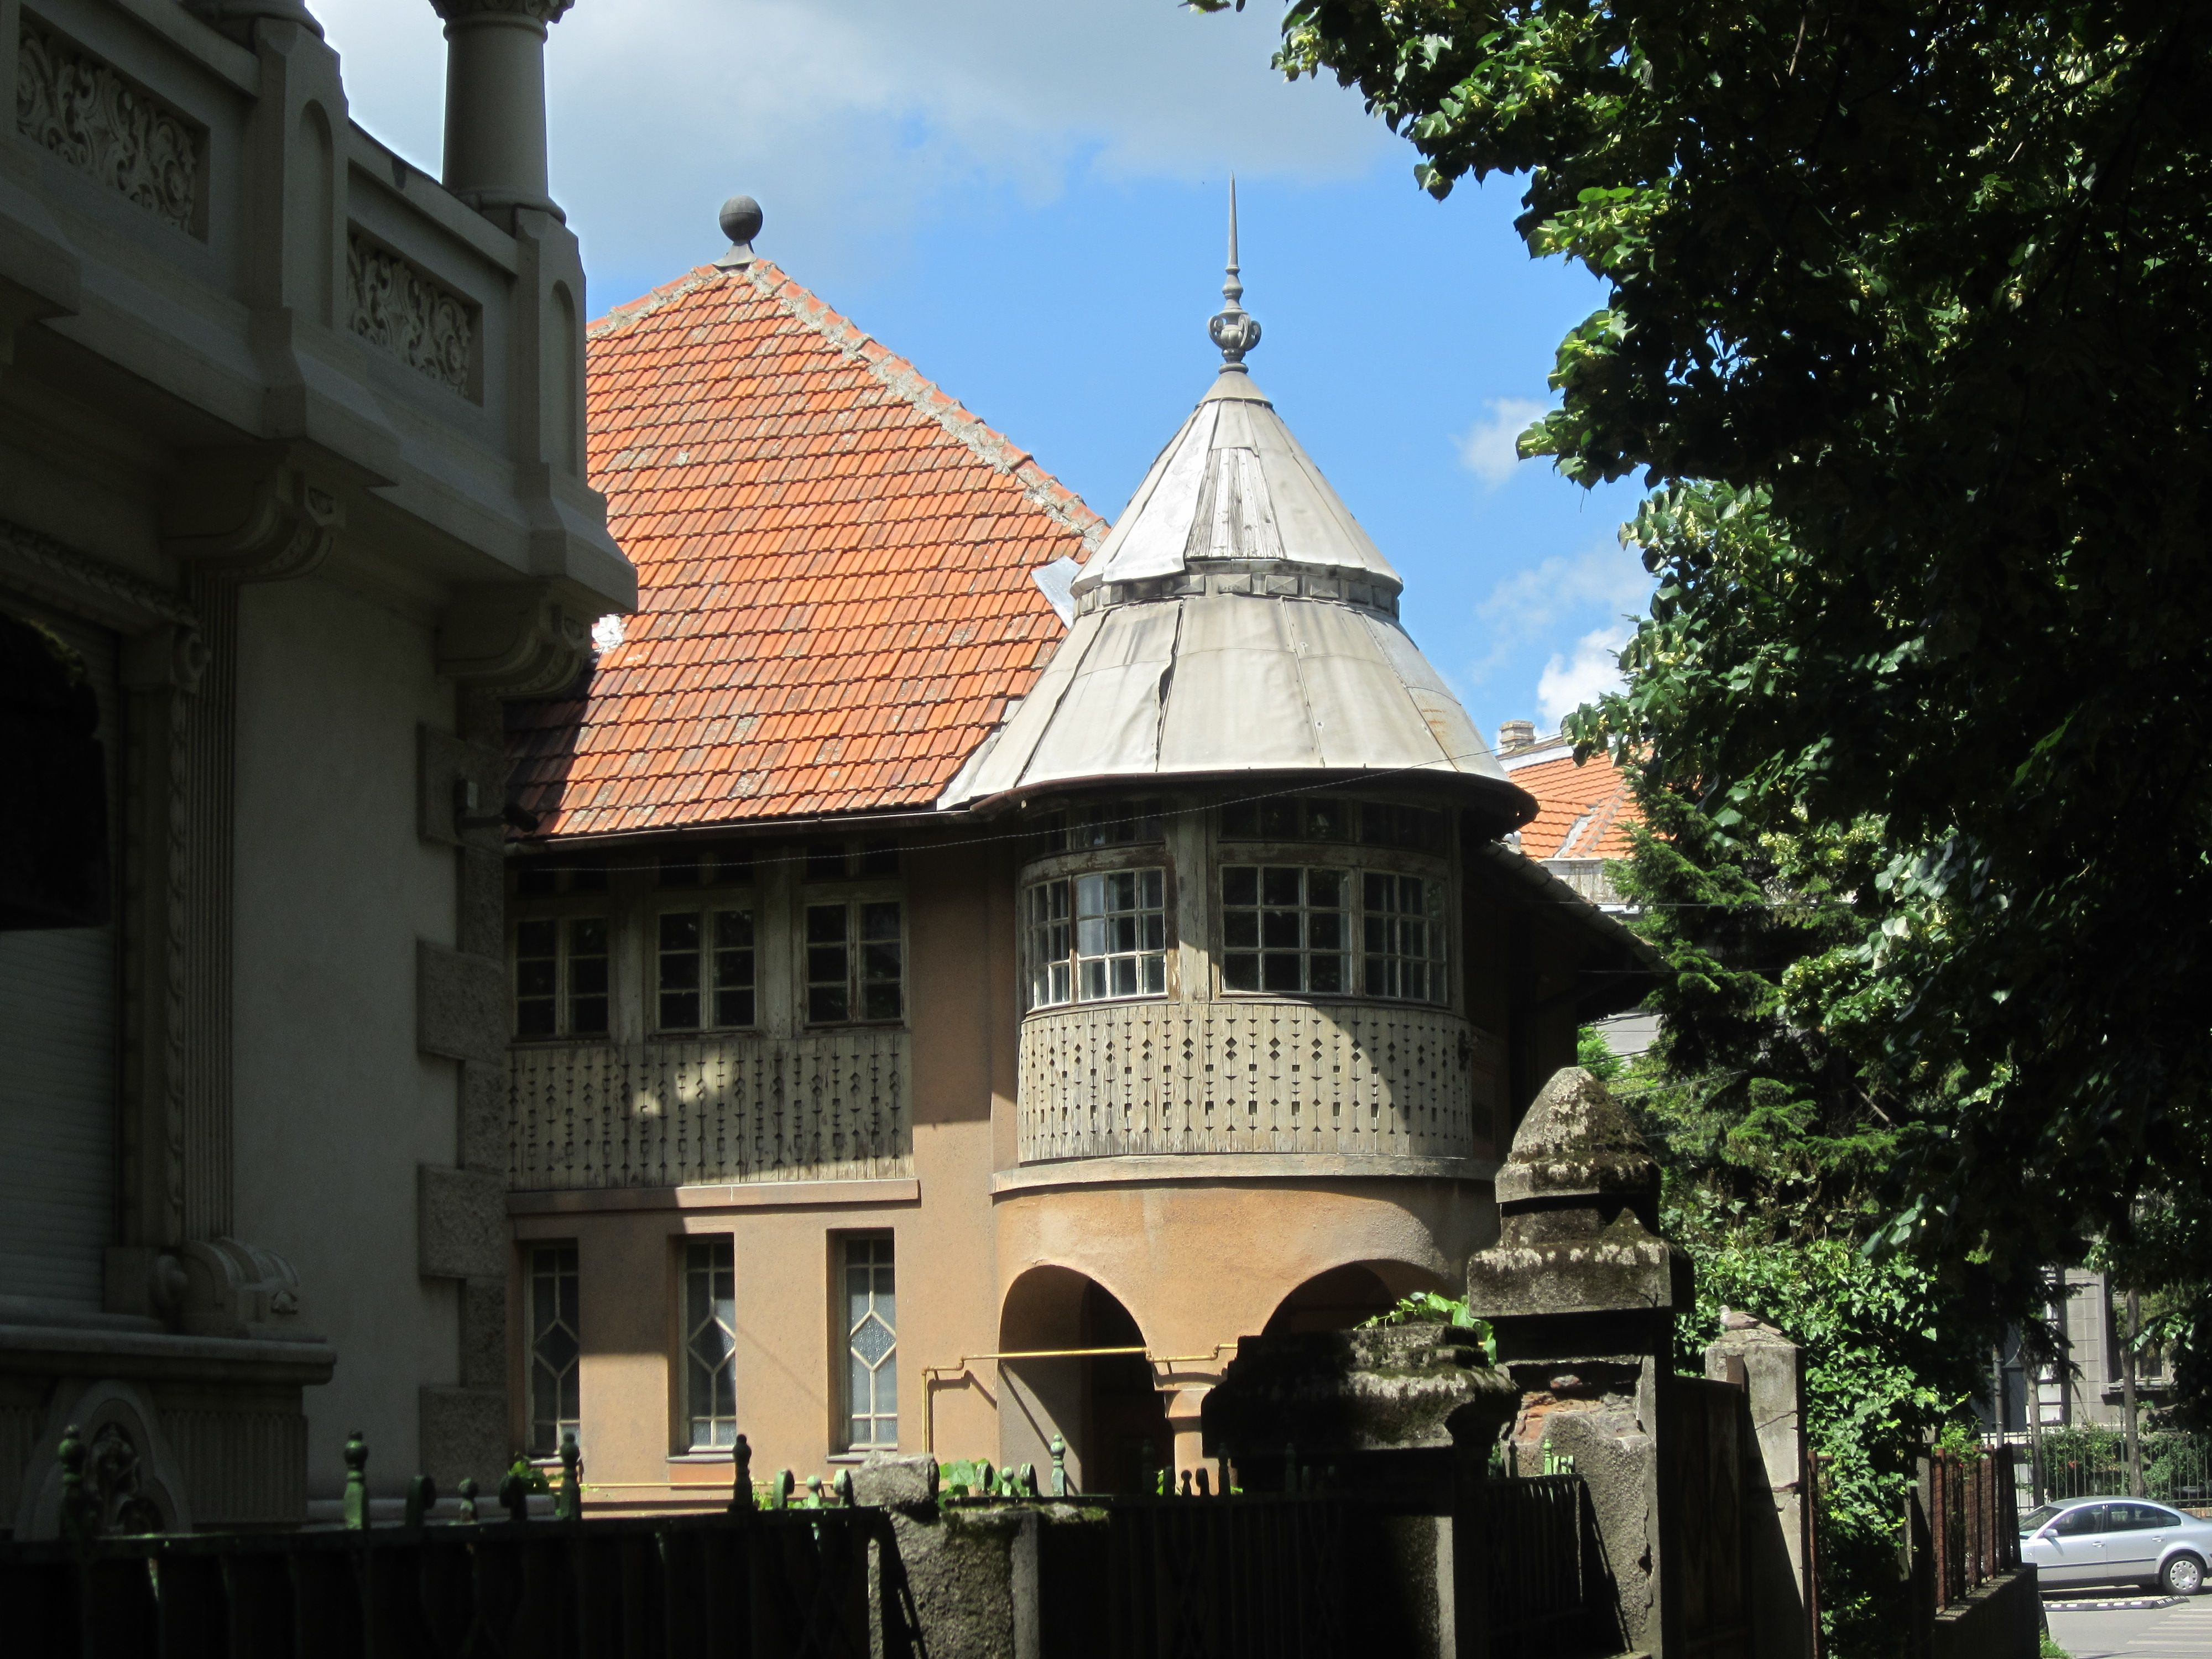 Old building with turret